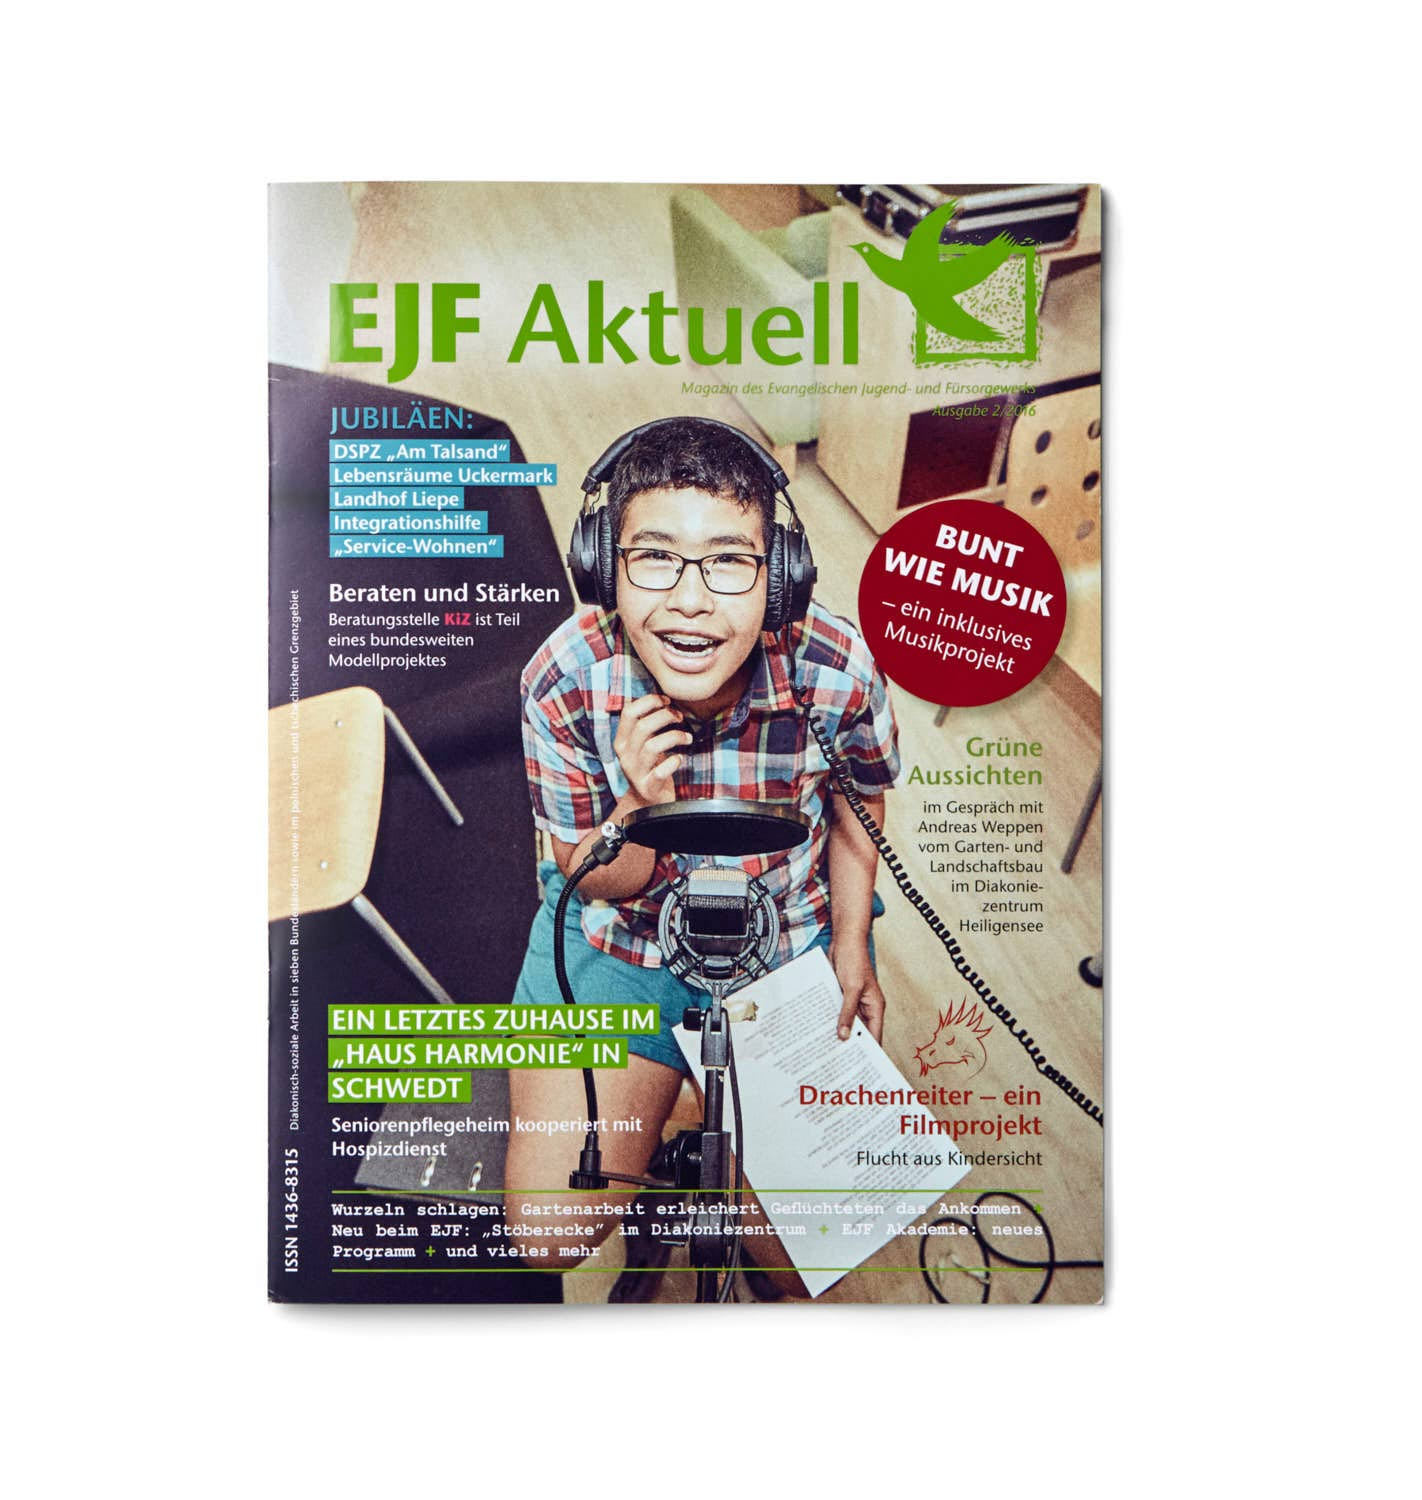 EJF Aktuell - Cover